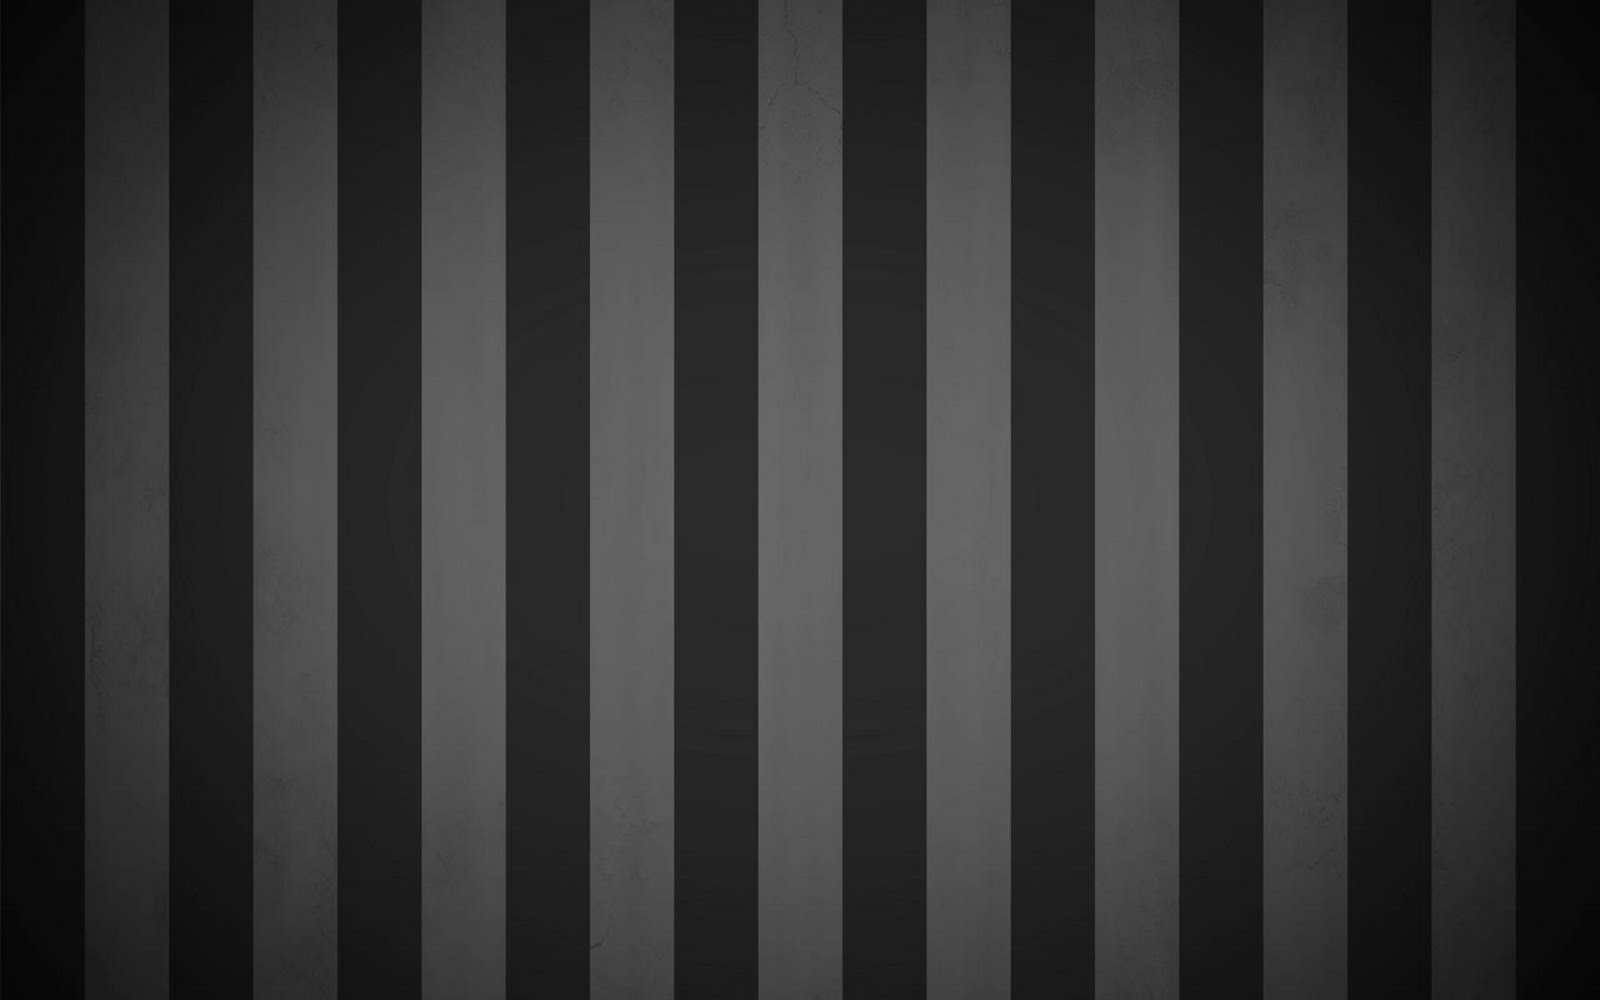 Black And Gray Striped Wallpaper